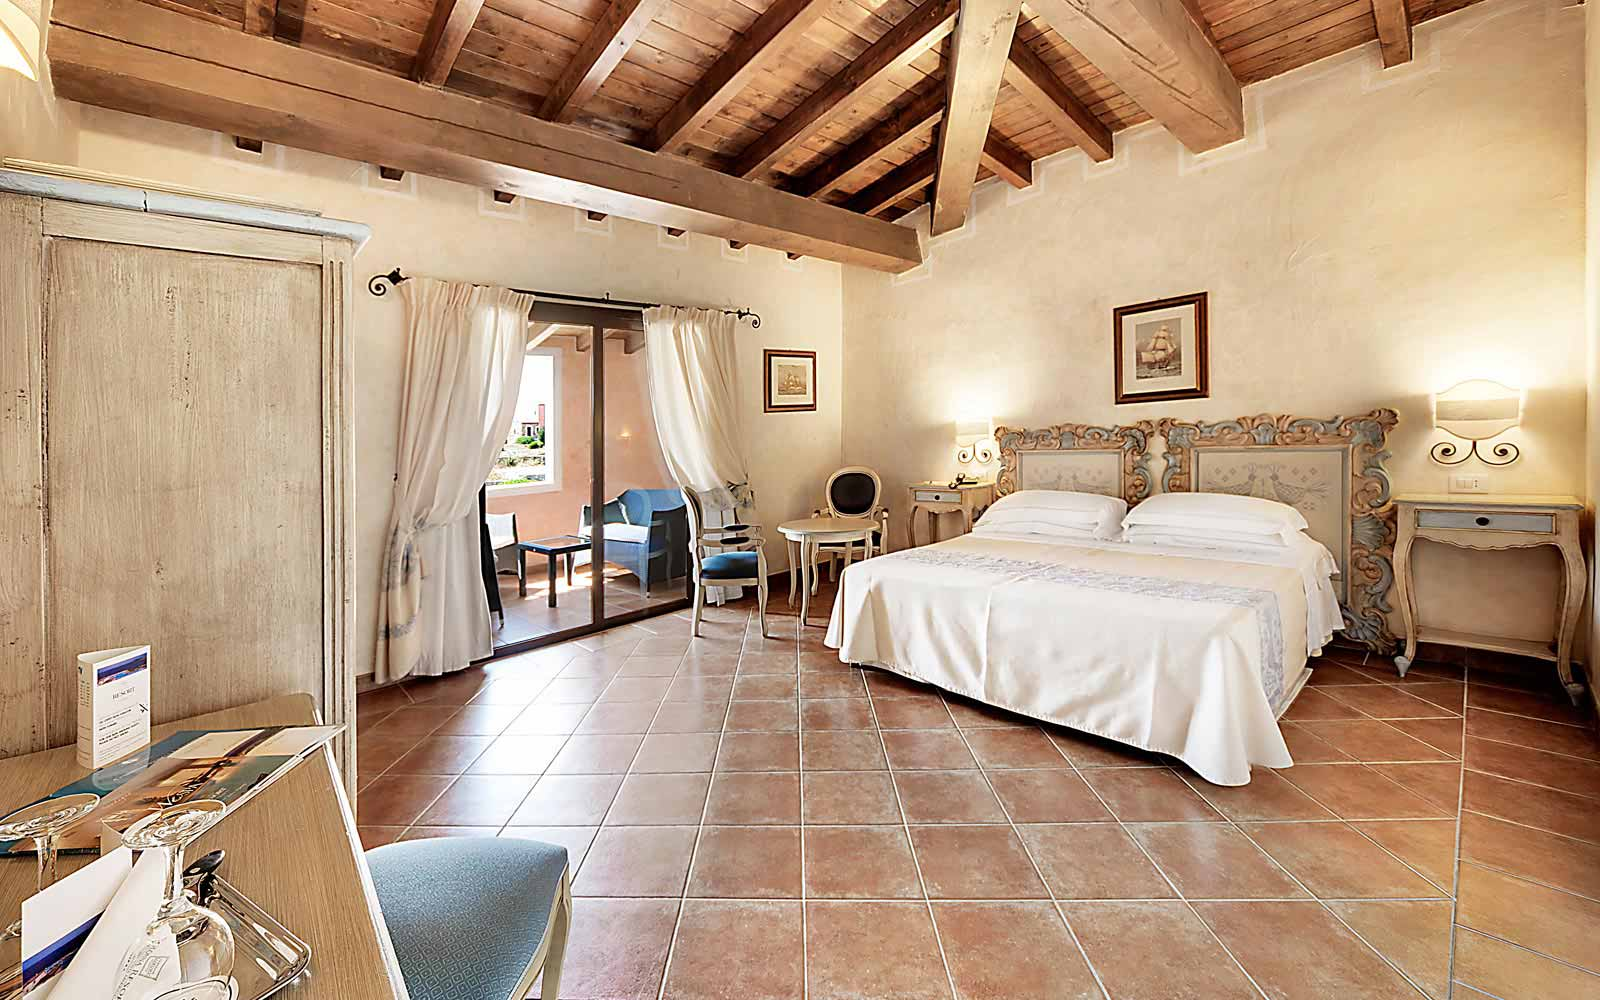 Deluxe room at Colonna Resort